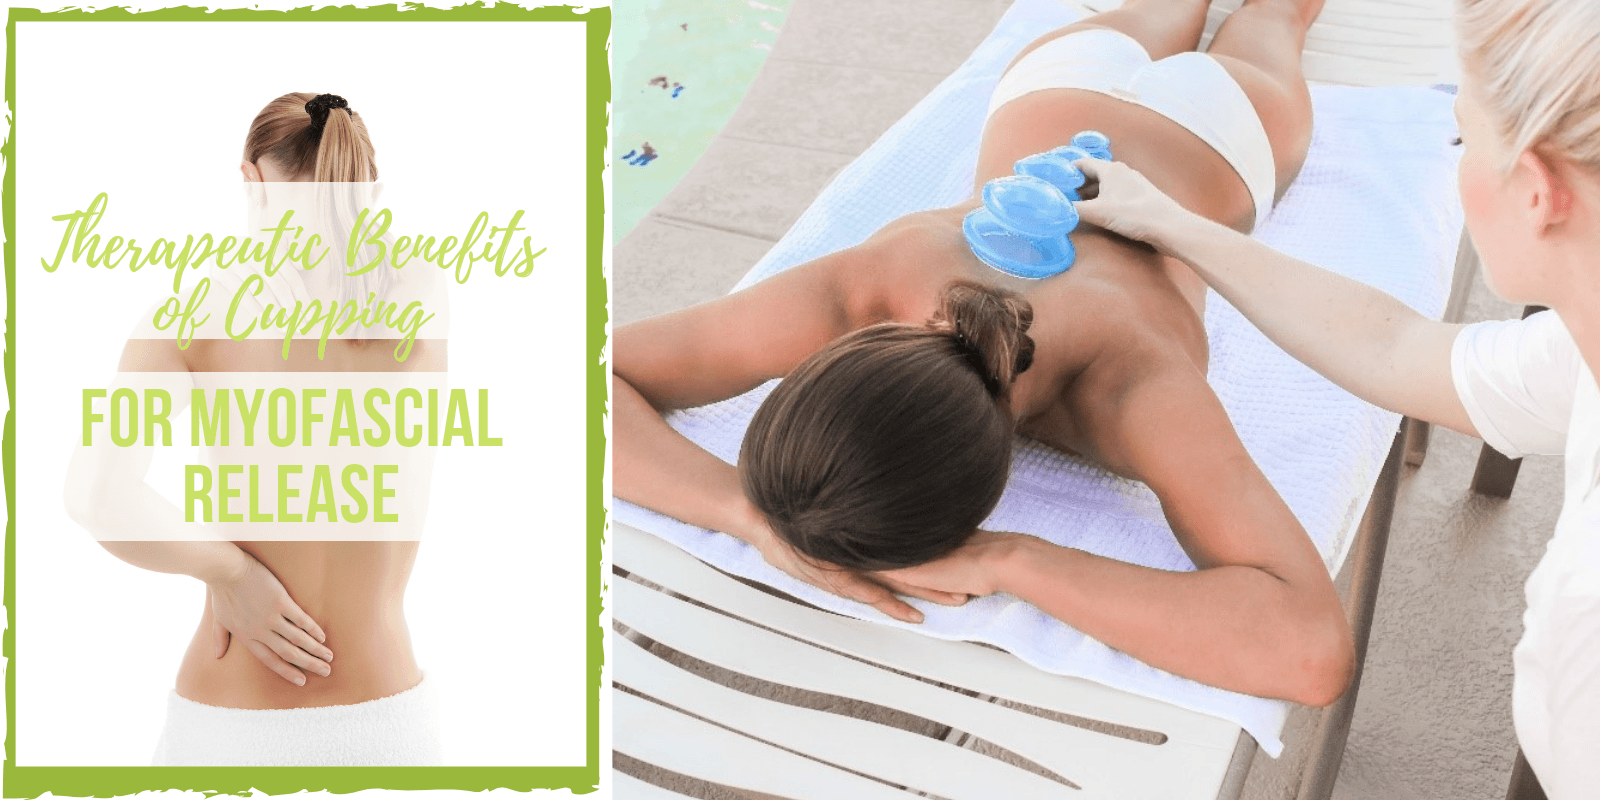 Therapeutic Benefits of Cupping for Myofascial Release - Lure Essentials